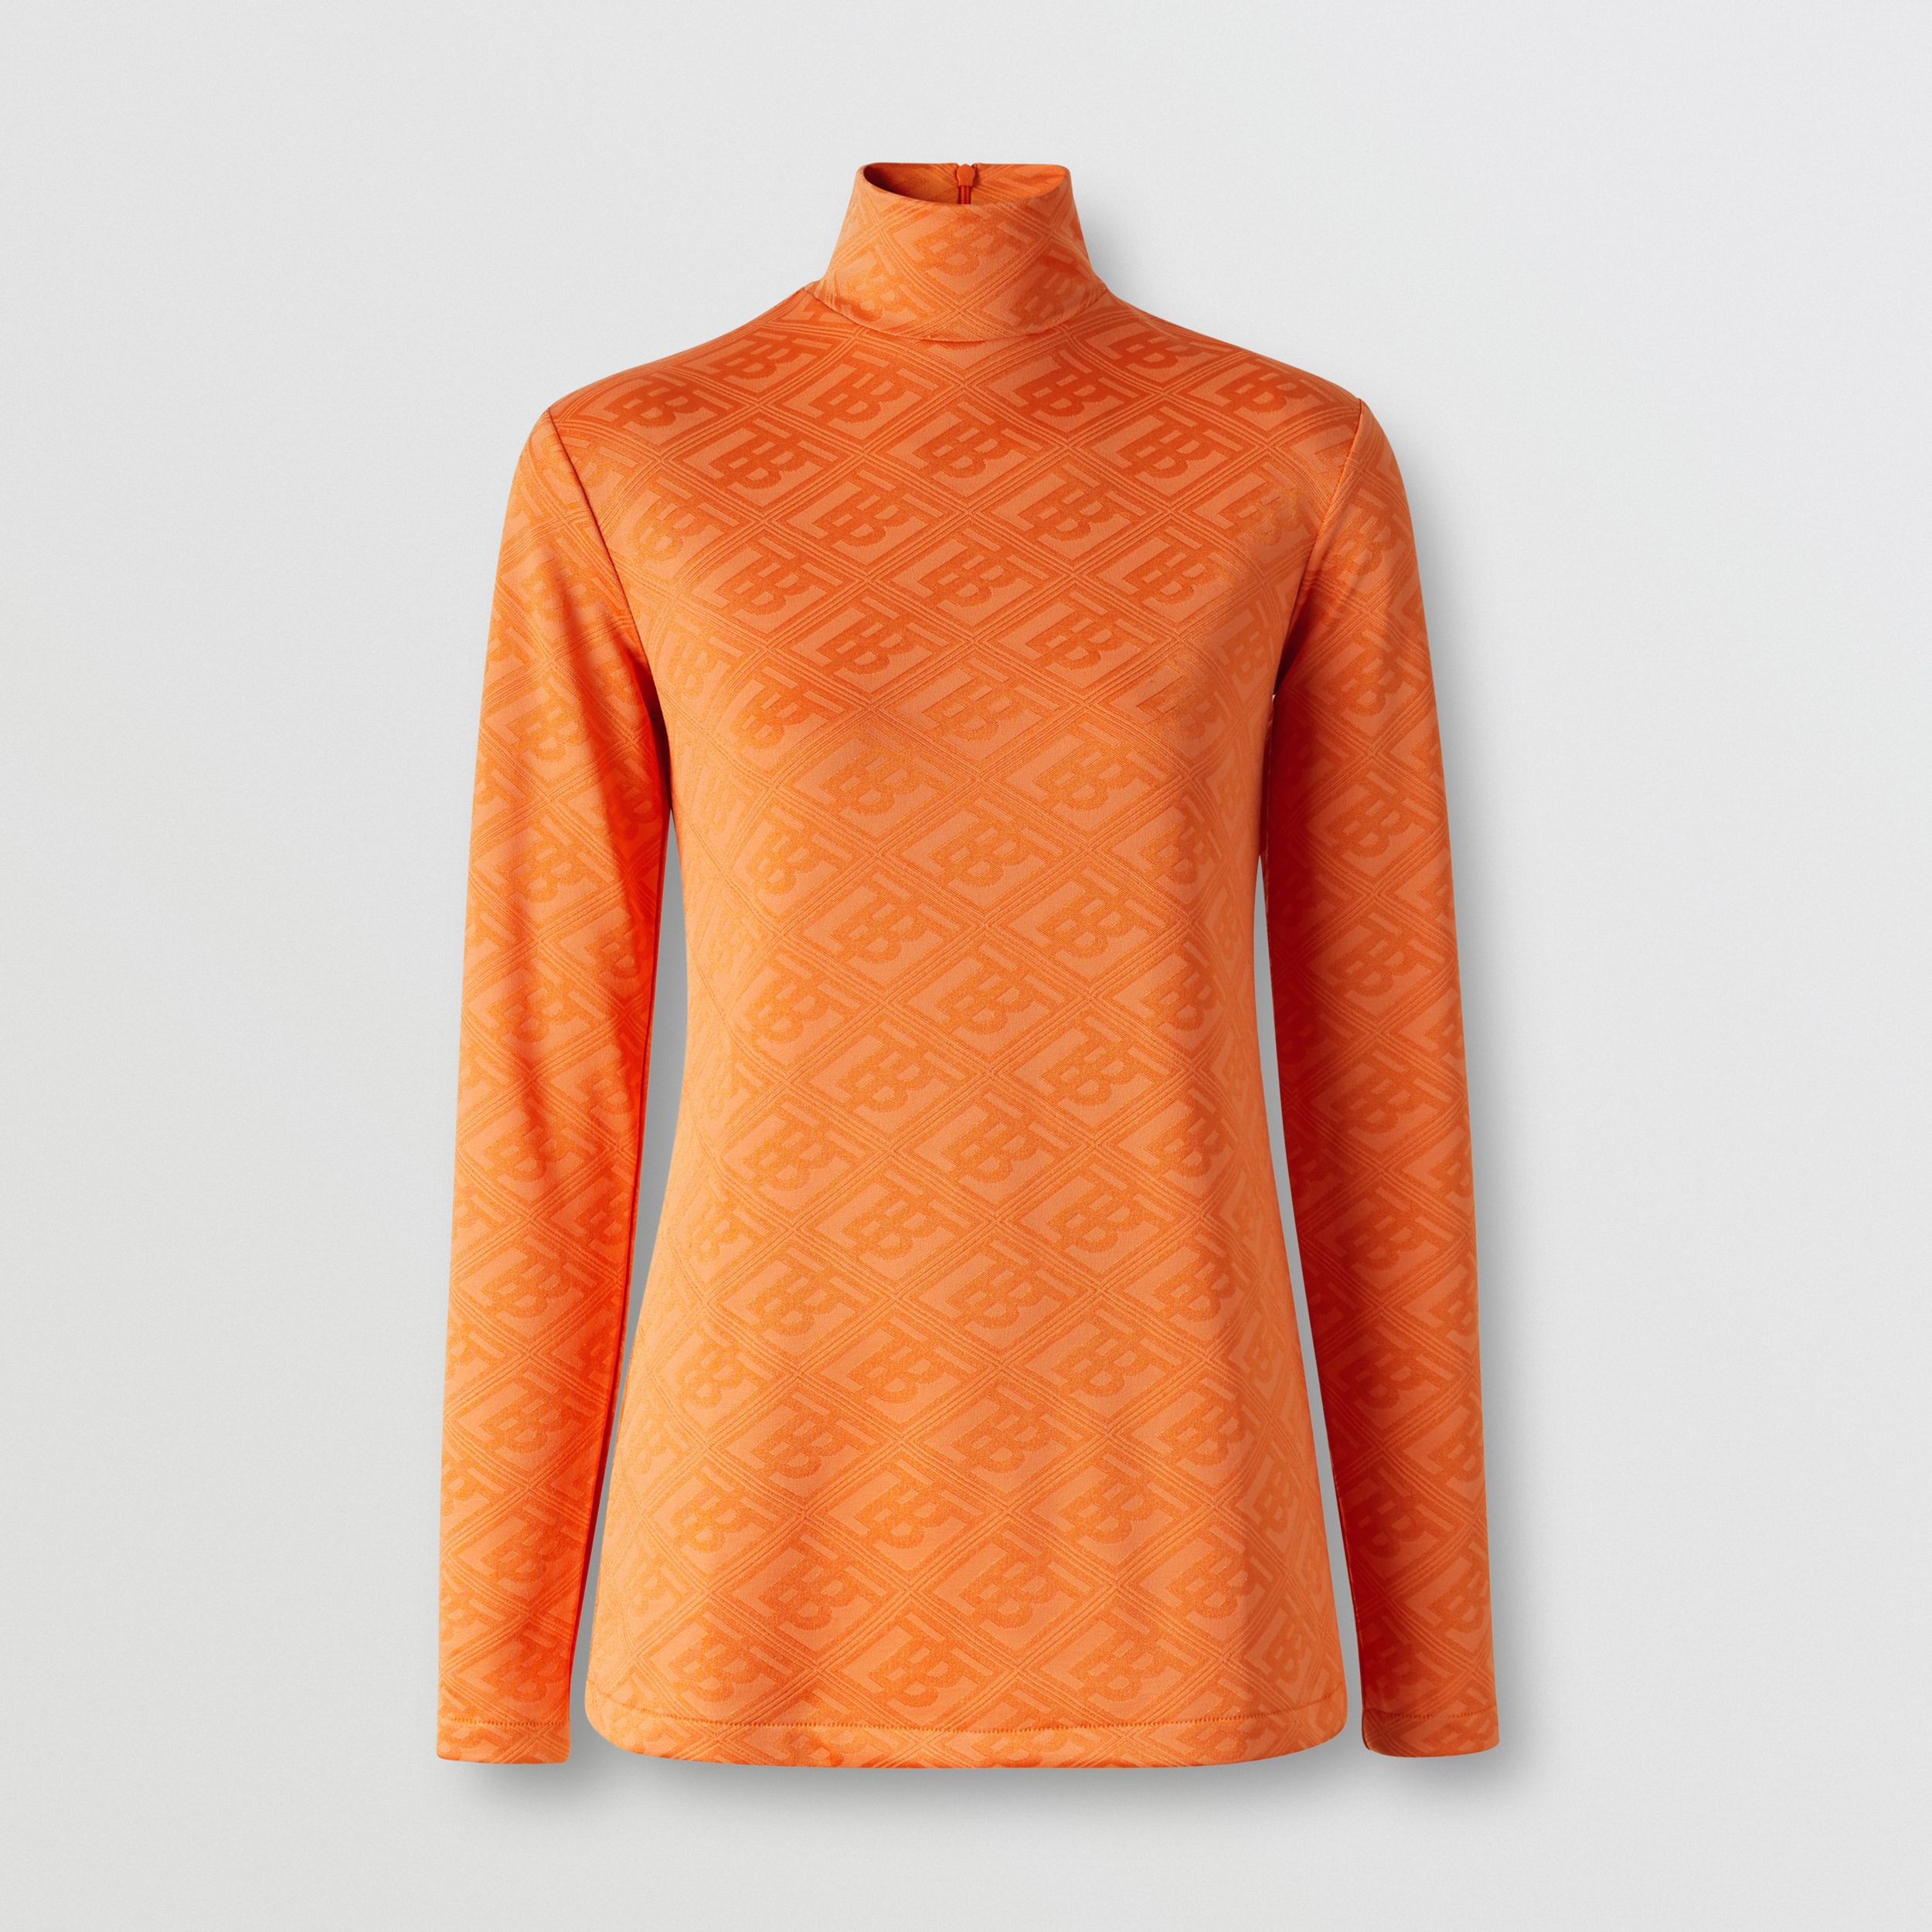 Logo Graphic Jersey Turtleneck Top in Bright Orange - Women | Burberry - 4